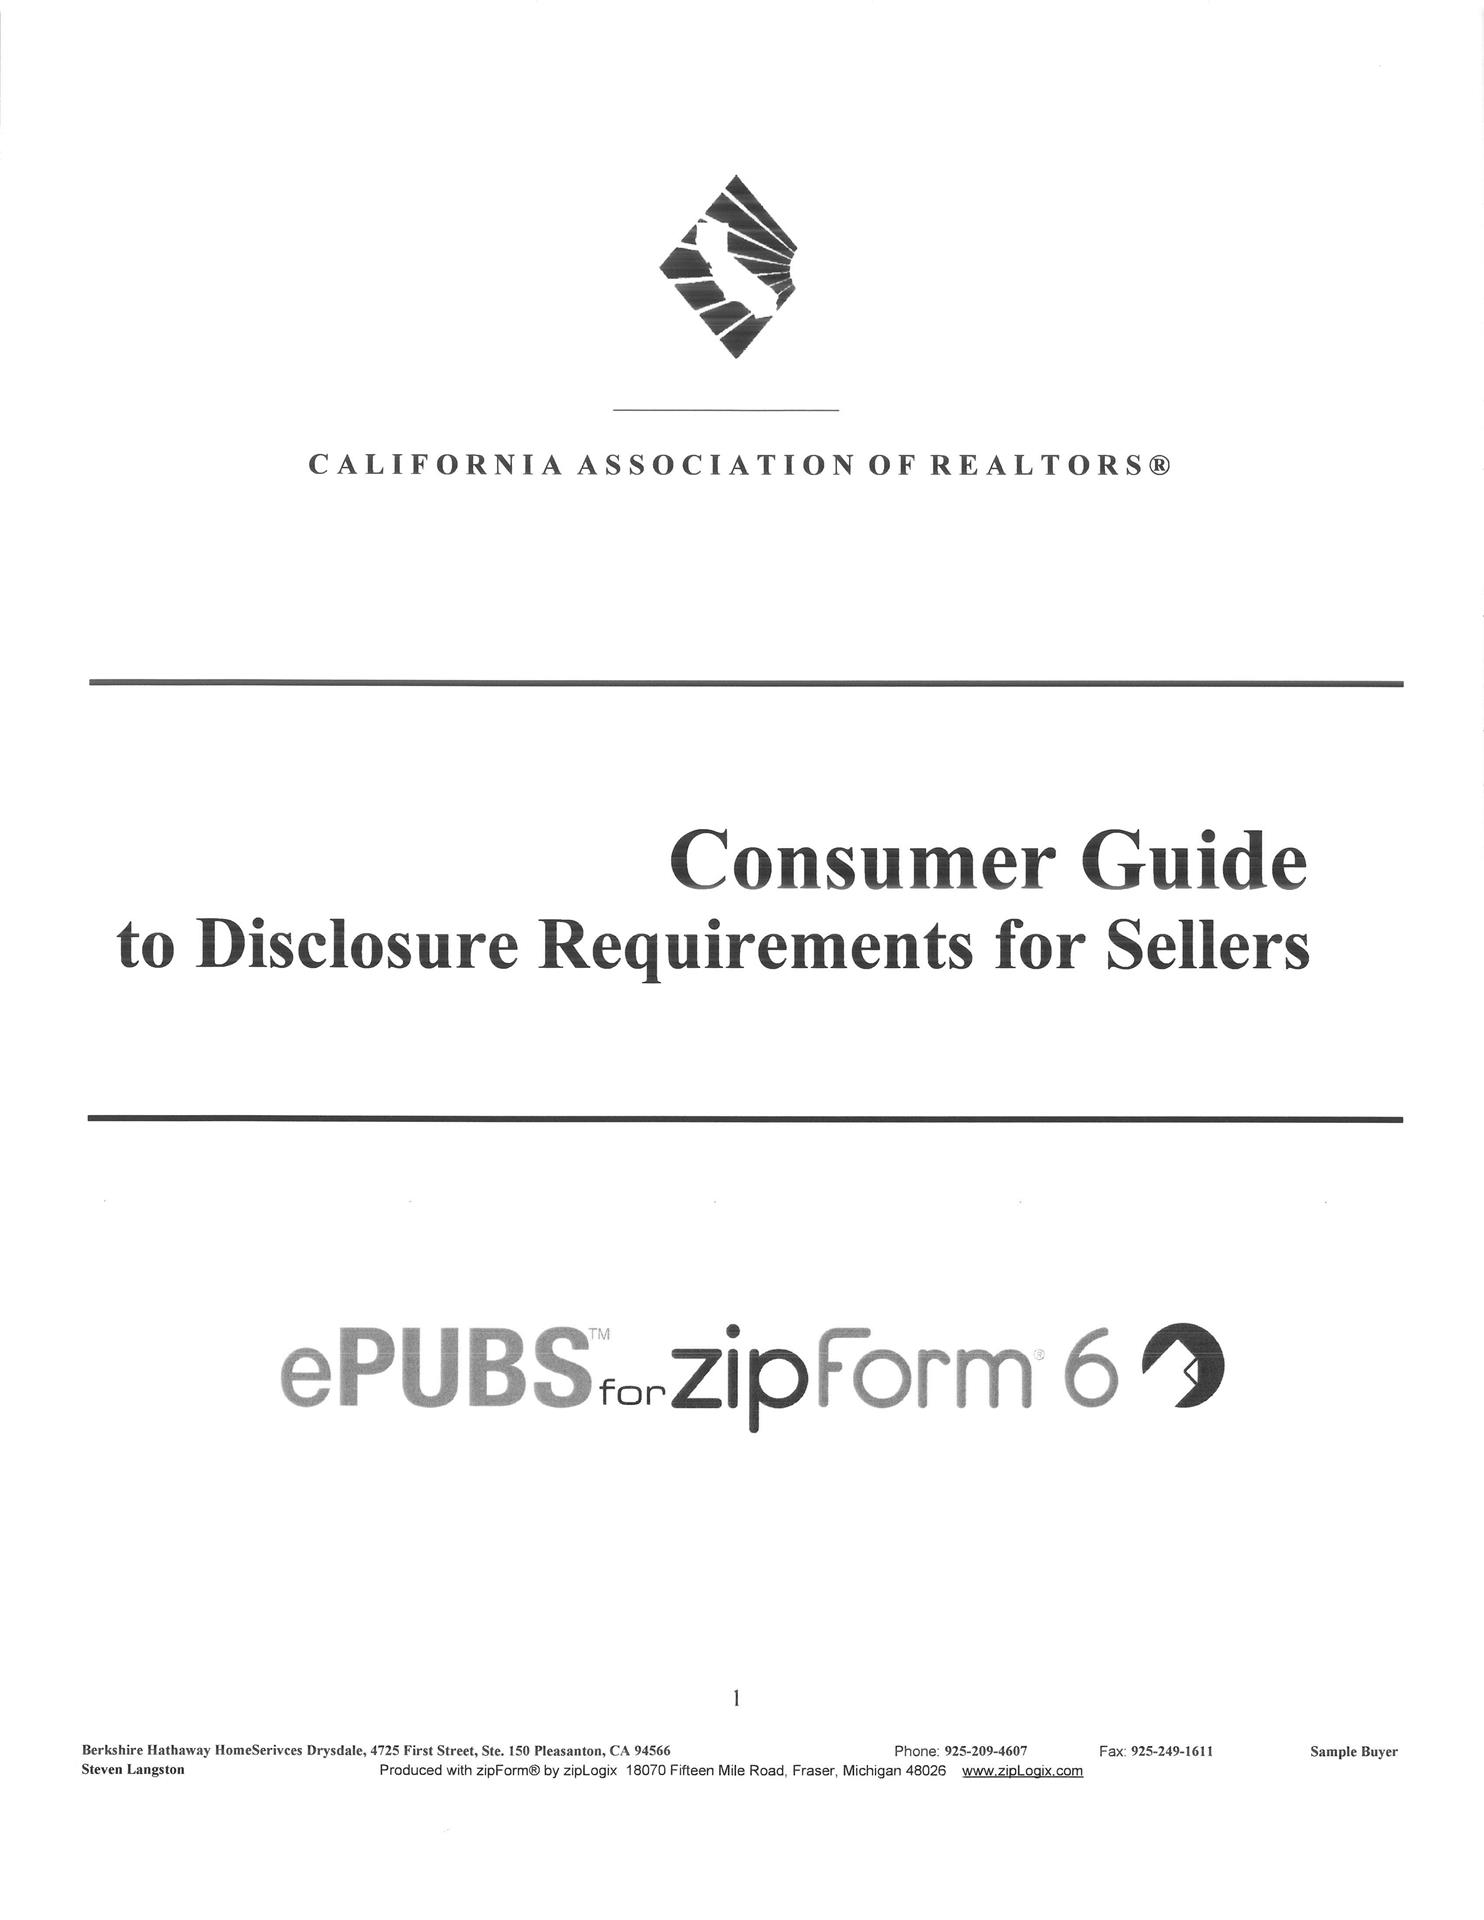 Guide to Disclosures for Sellers